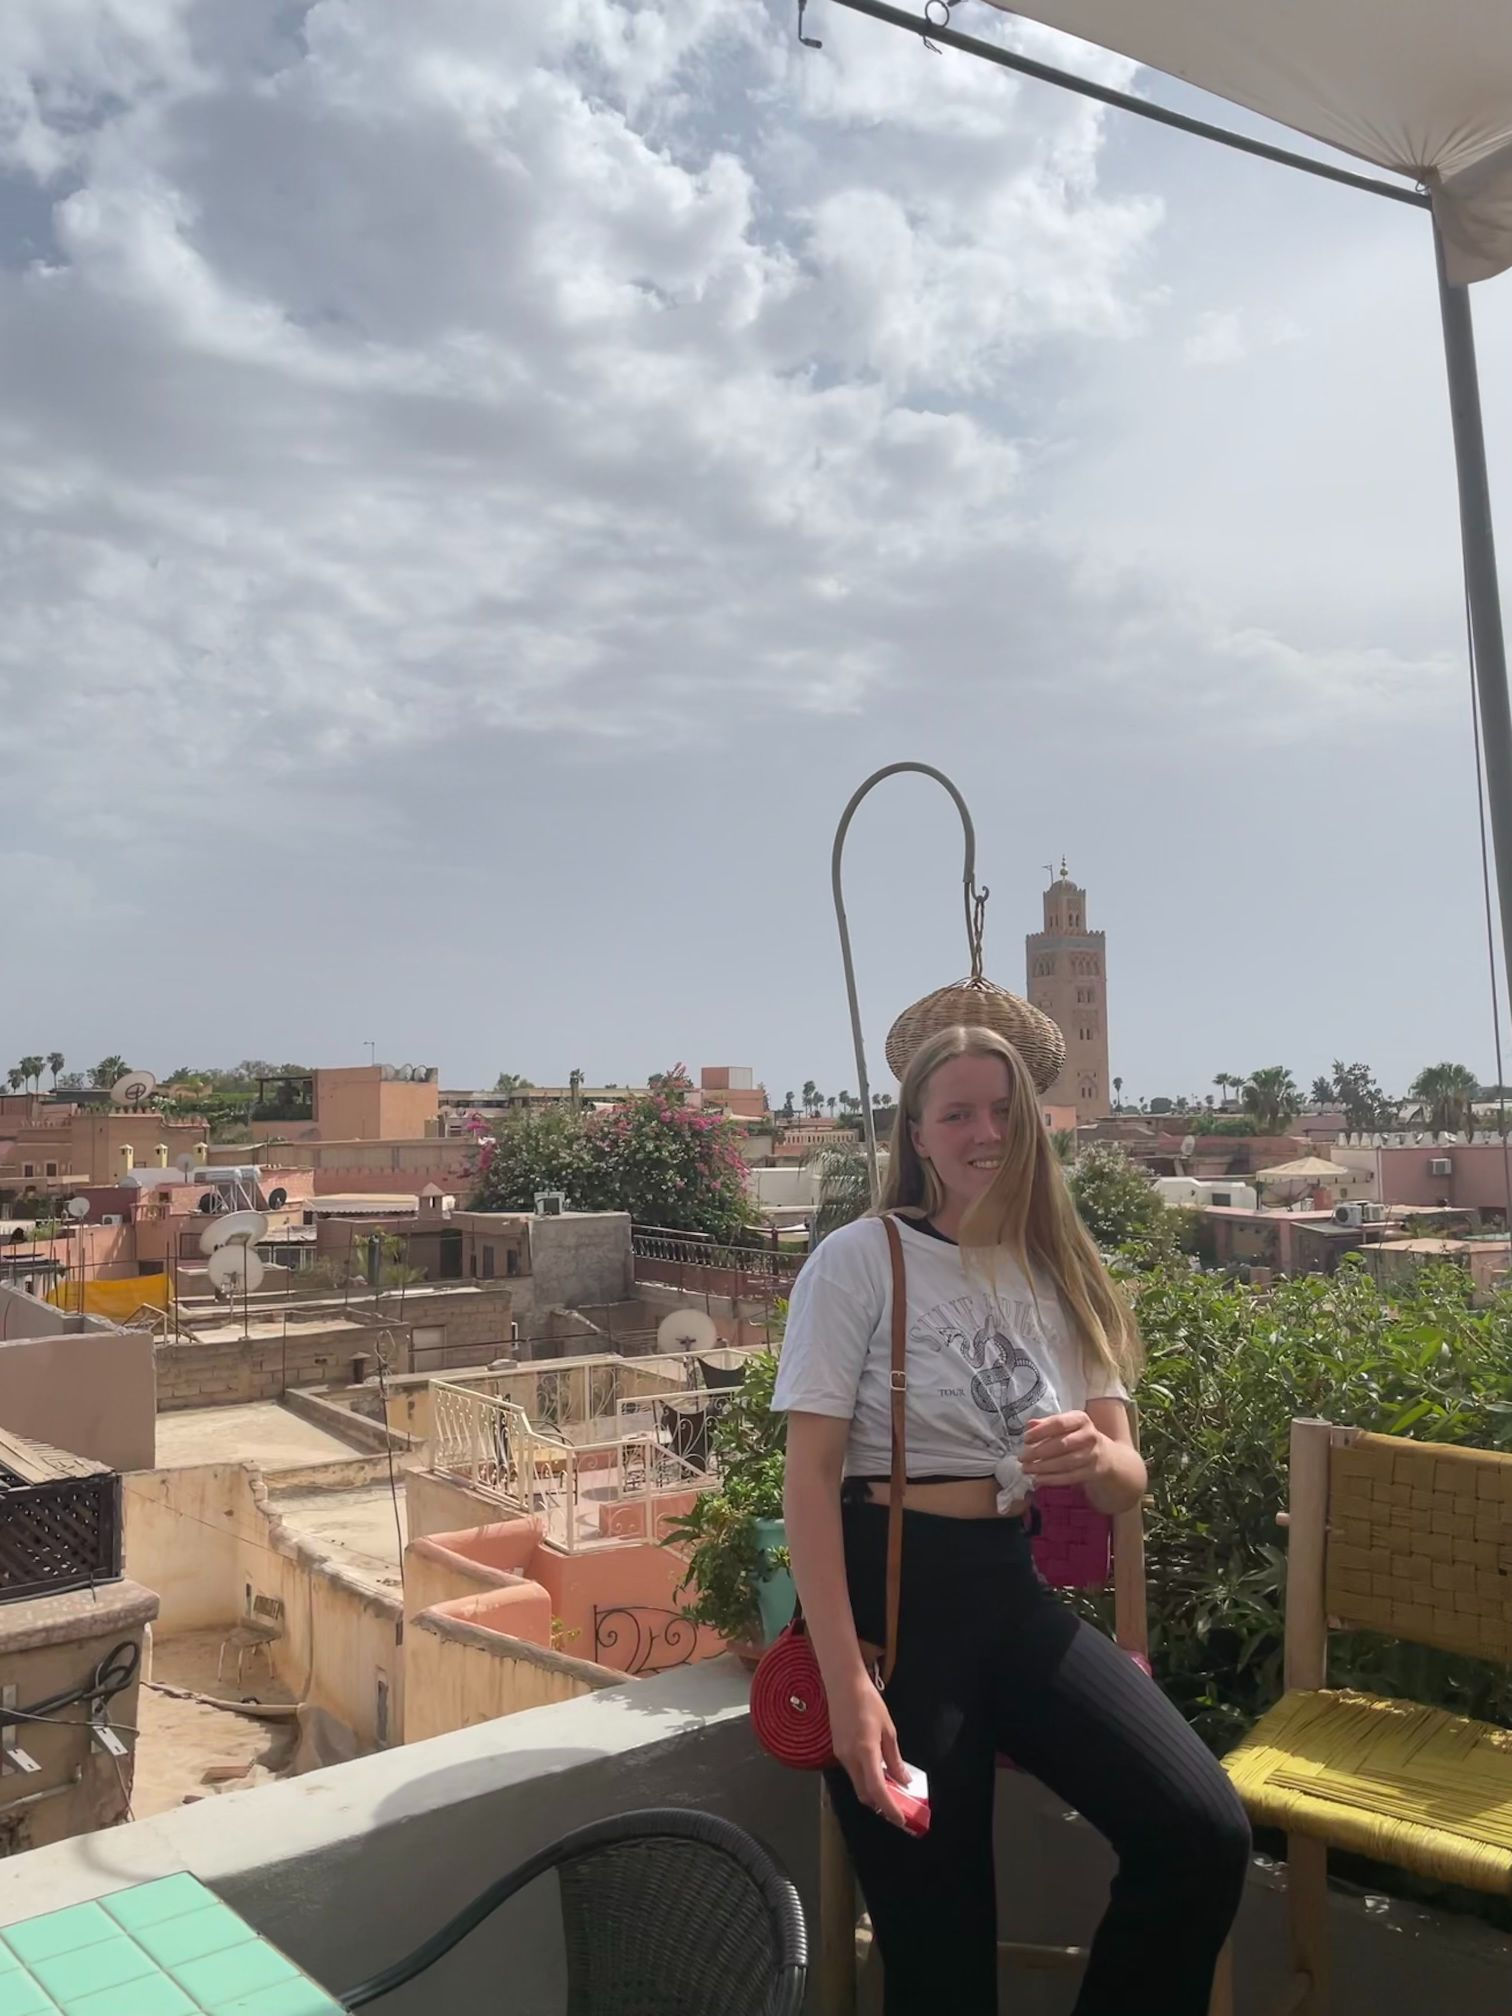 photoshoot on rooftop in marrakech morocco